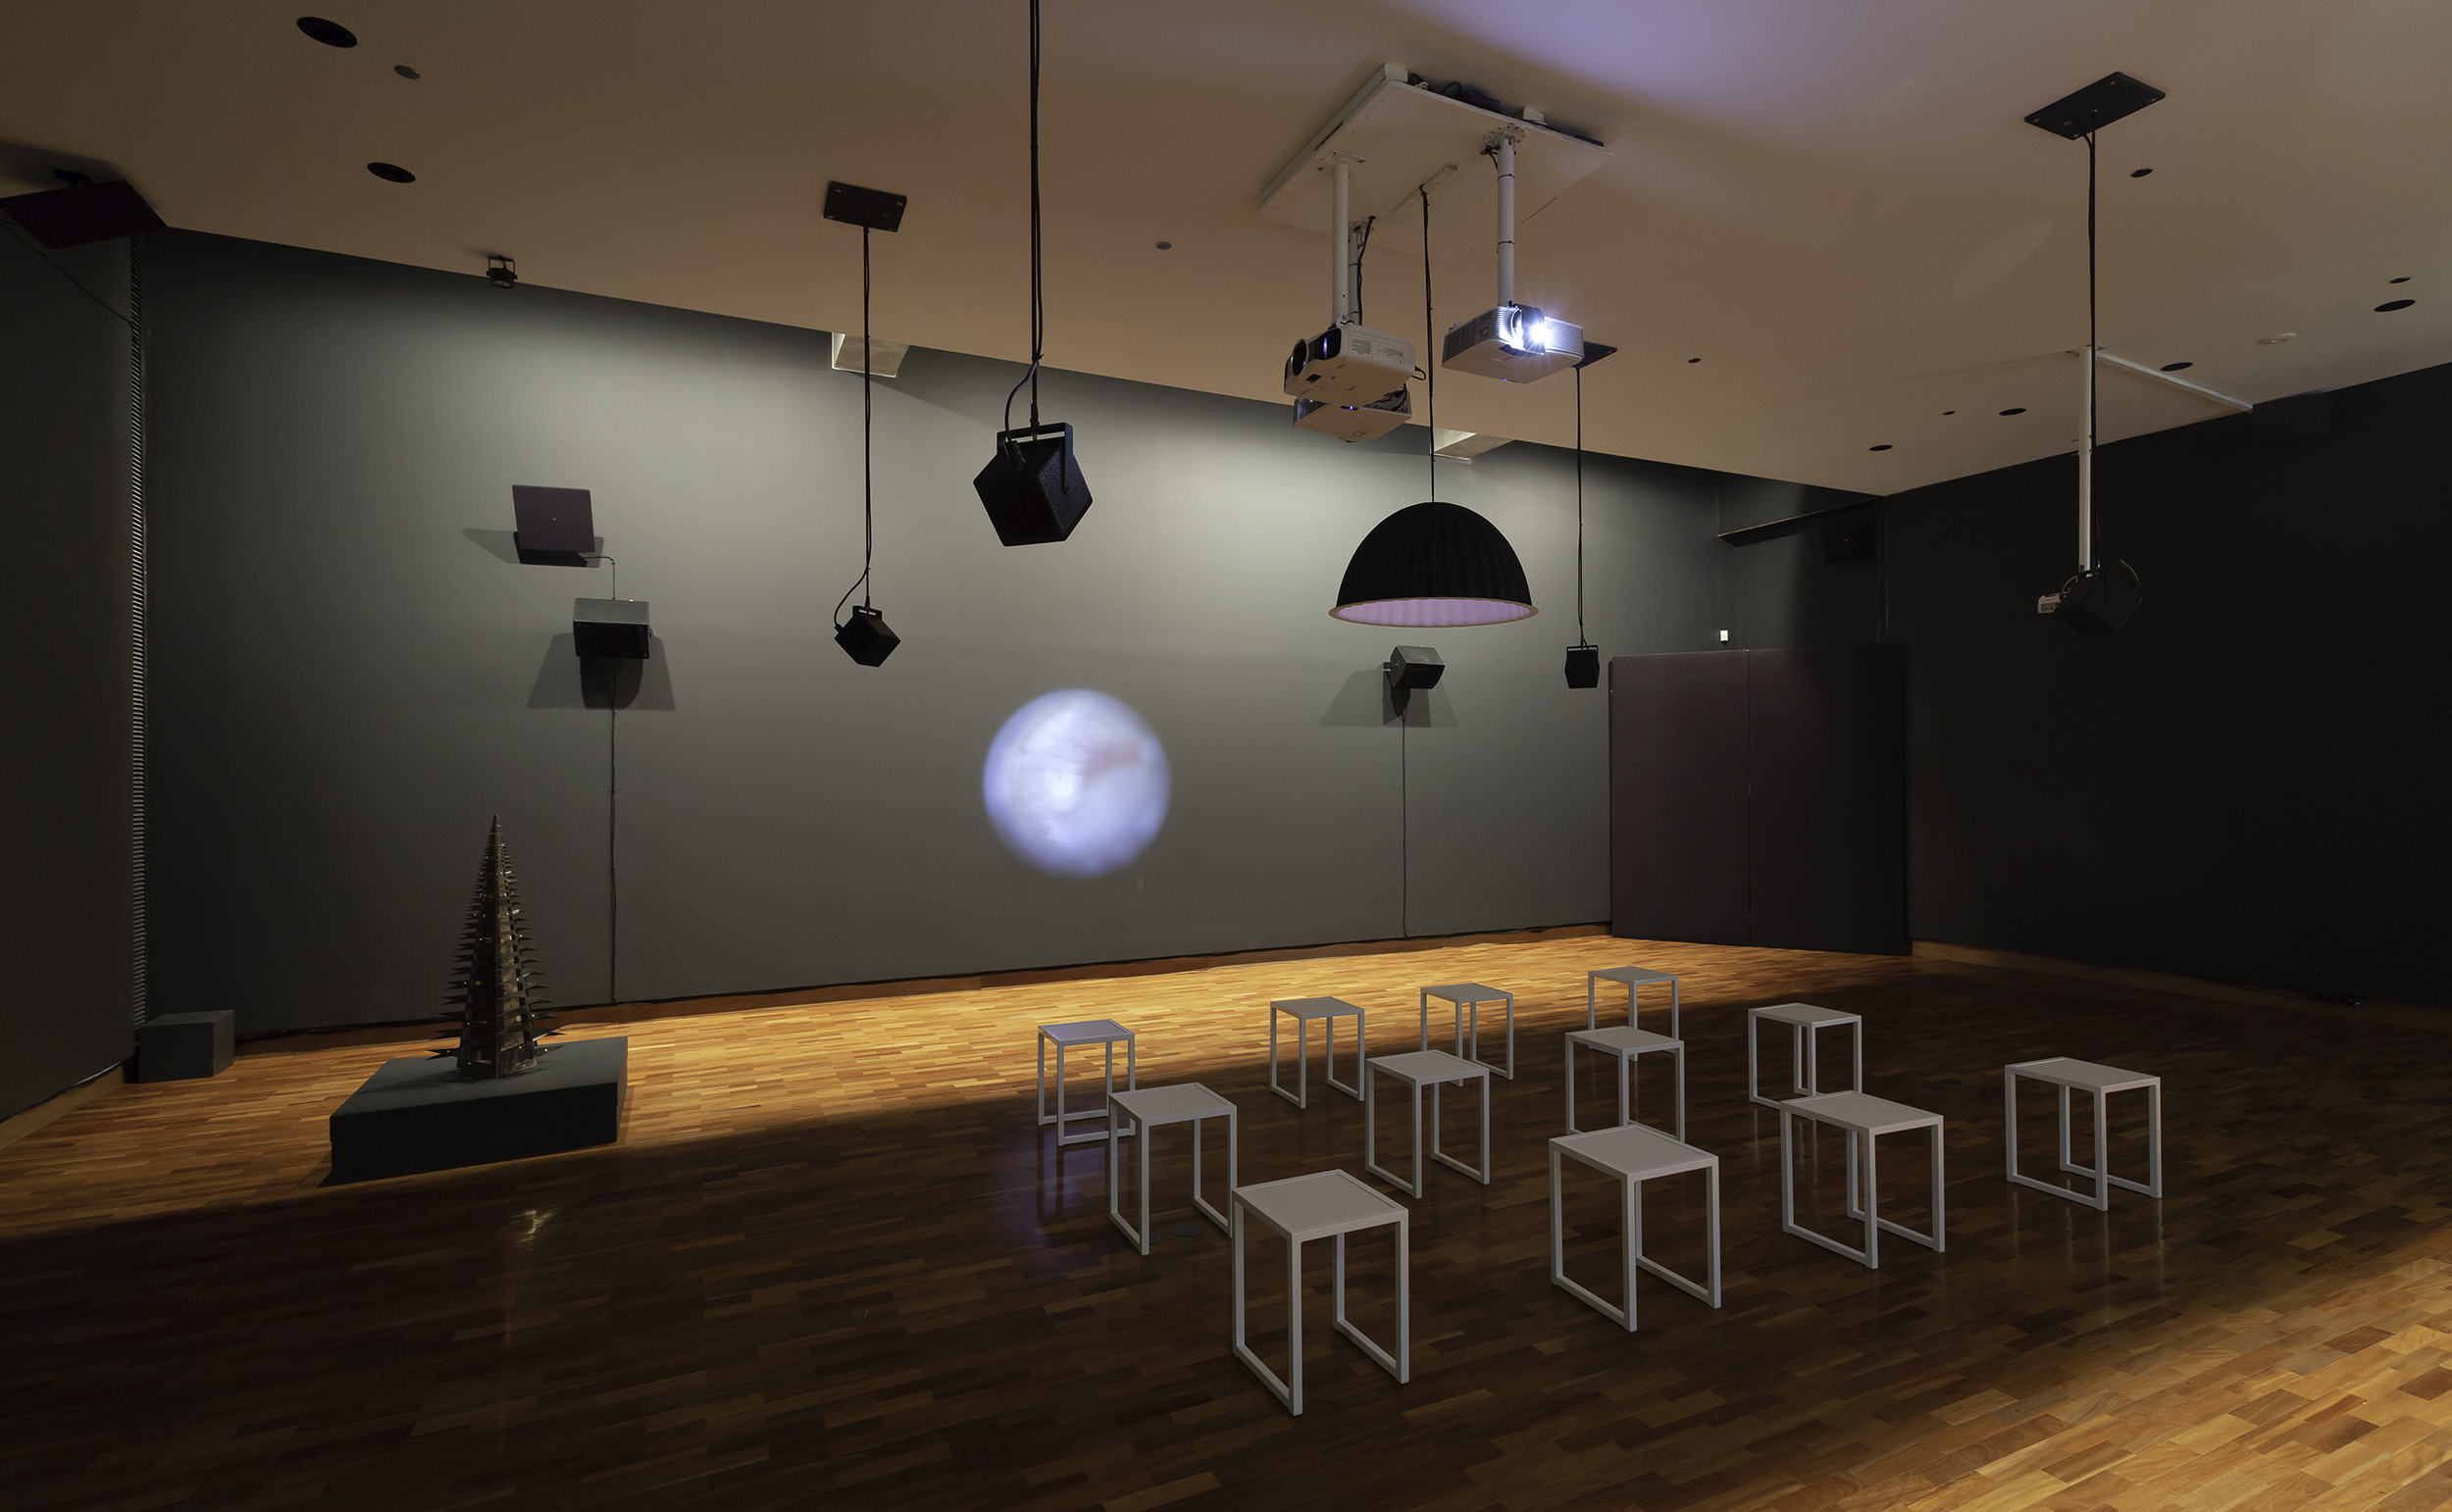 <p>While this image depicts a number of works in situ, it also gives a sense of the space in which <em>how are you today</em> was situated as part of <em>Eavesdropping</em> at Ian Potter Museum of Art, University of Melbourne, Melbourne.</p>